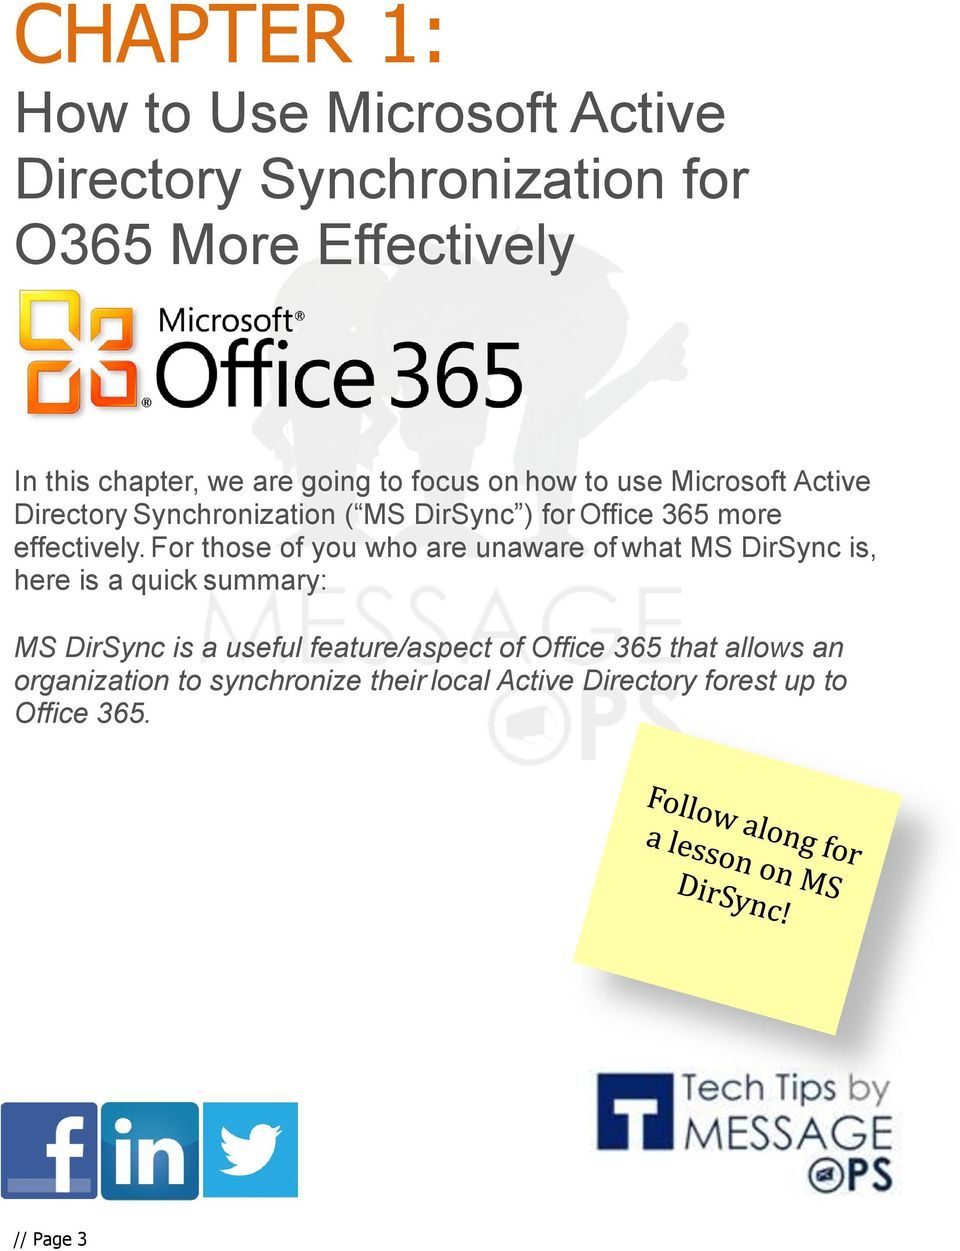 For those of you who are unaware of what MS DirSync is, here is a quick summary: MS DirSync is a useful feature/aspect